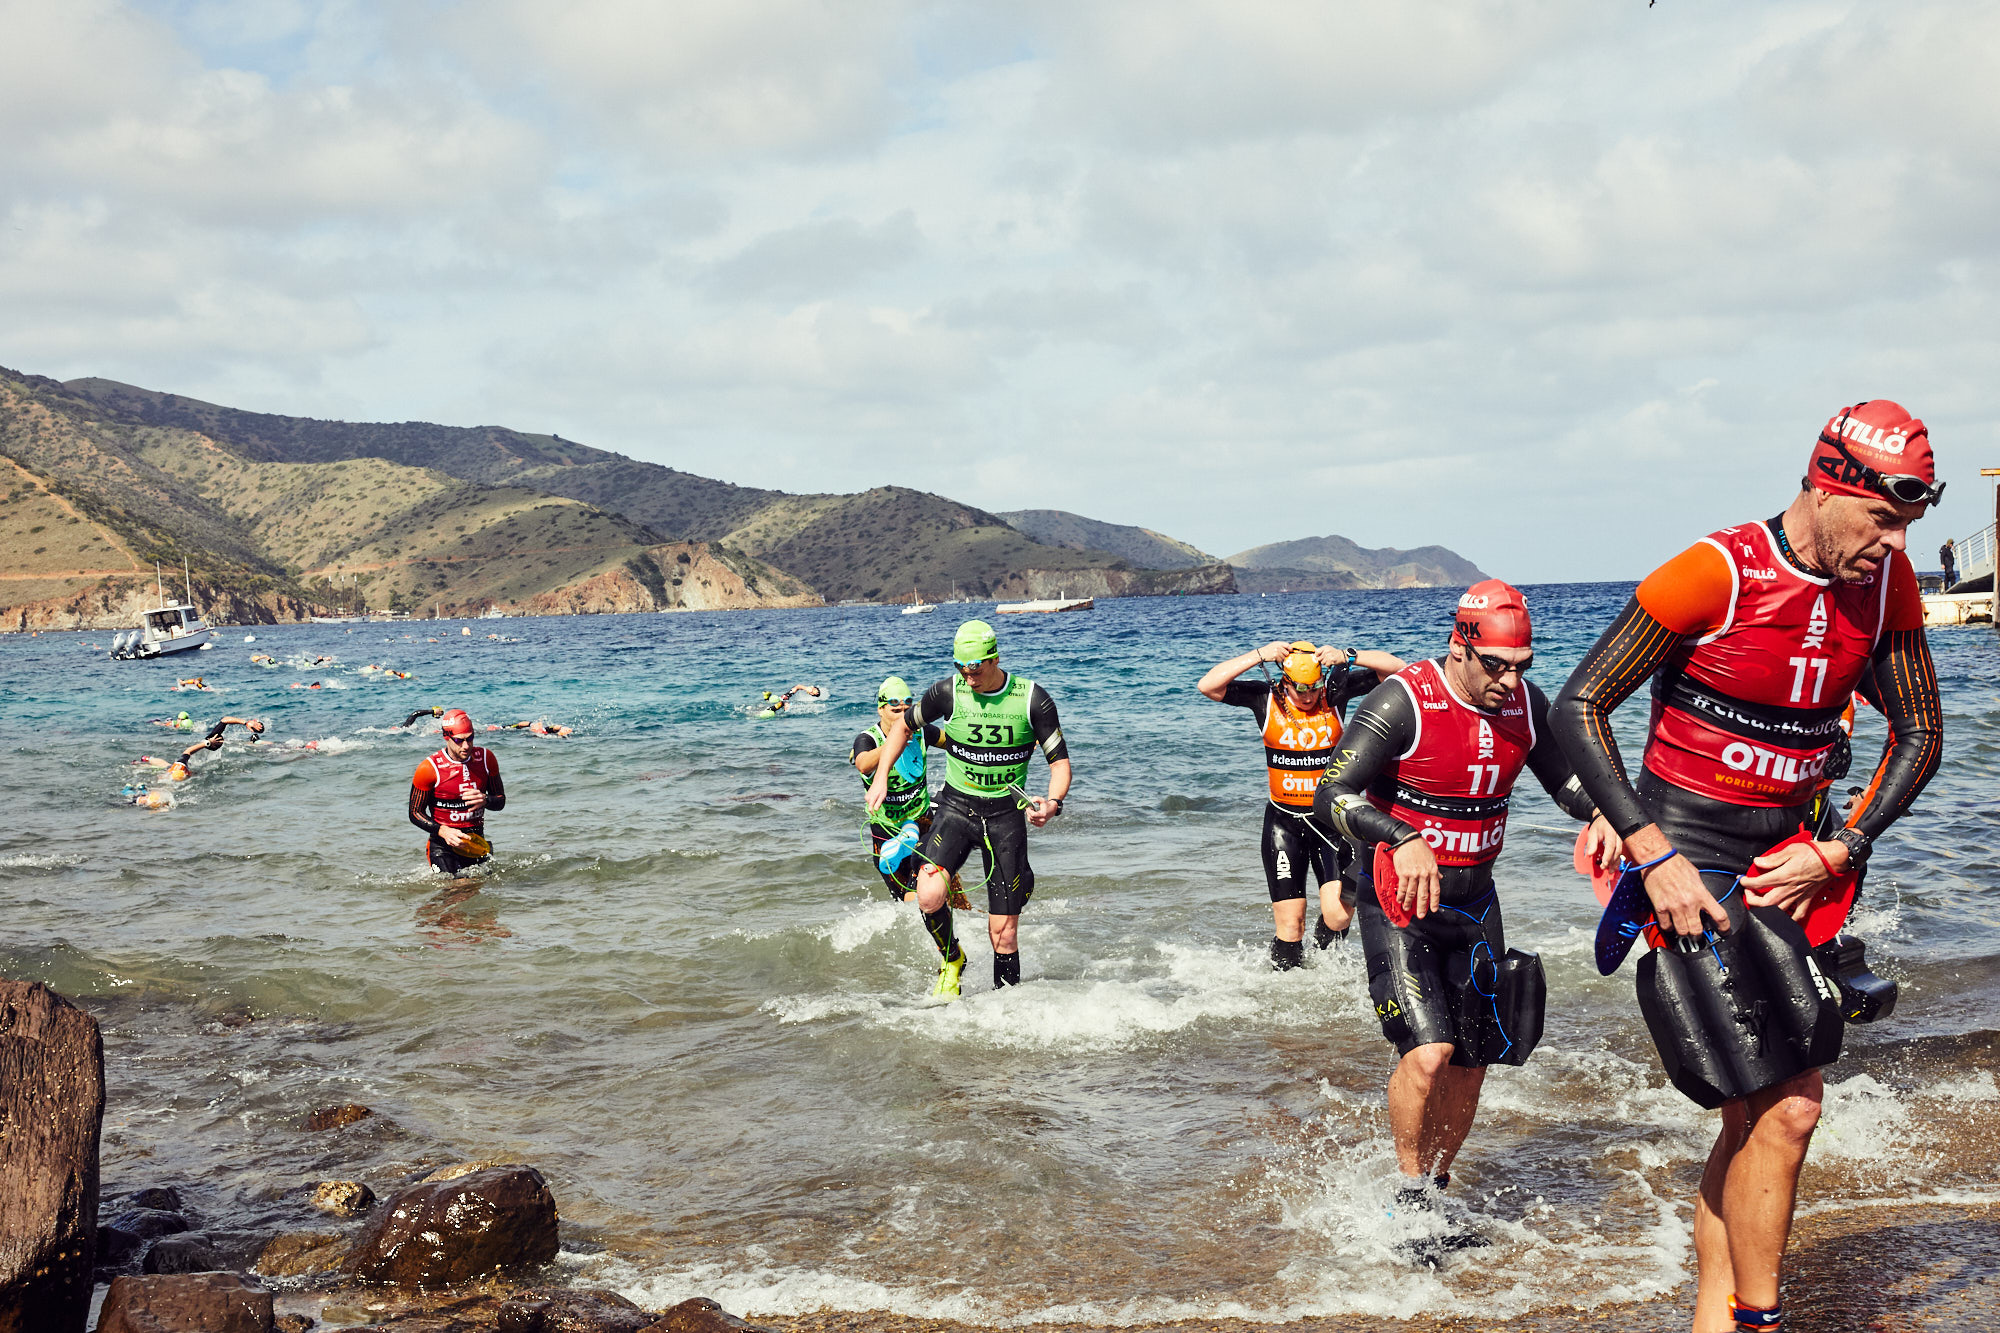 Otillo SWIMRUN Catalina